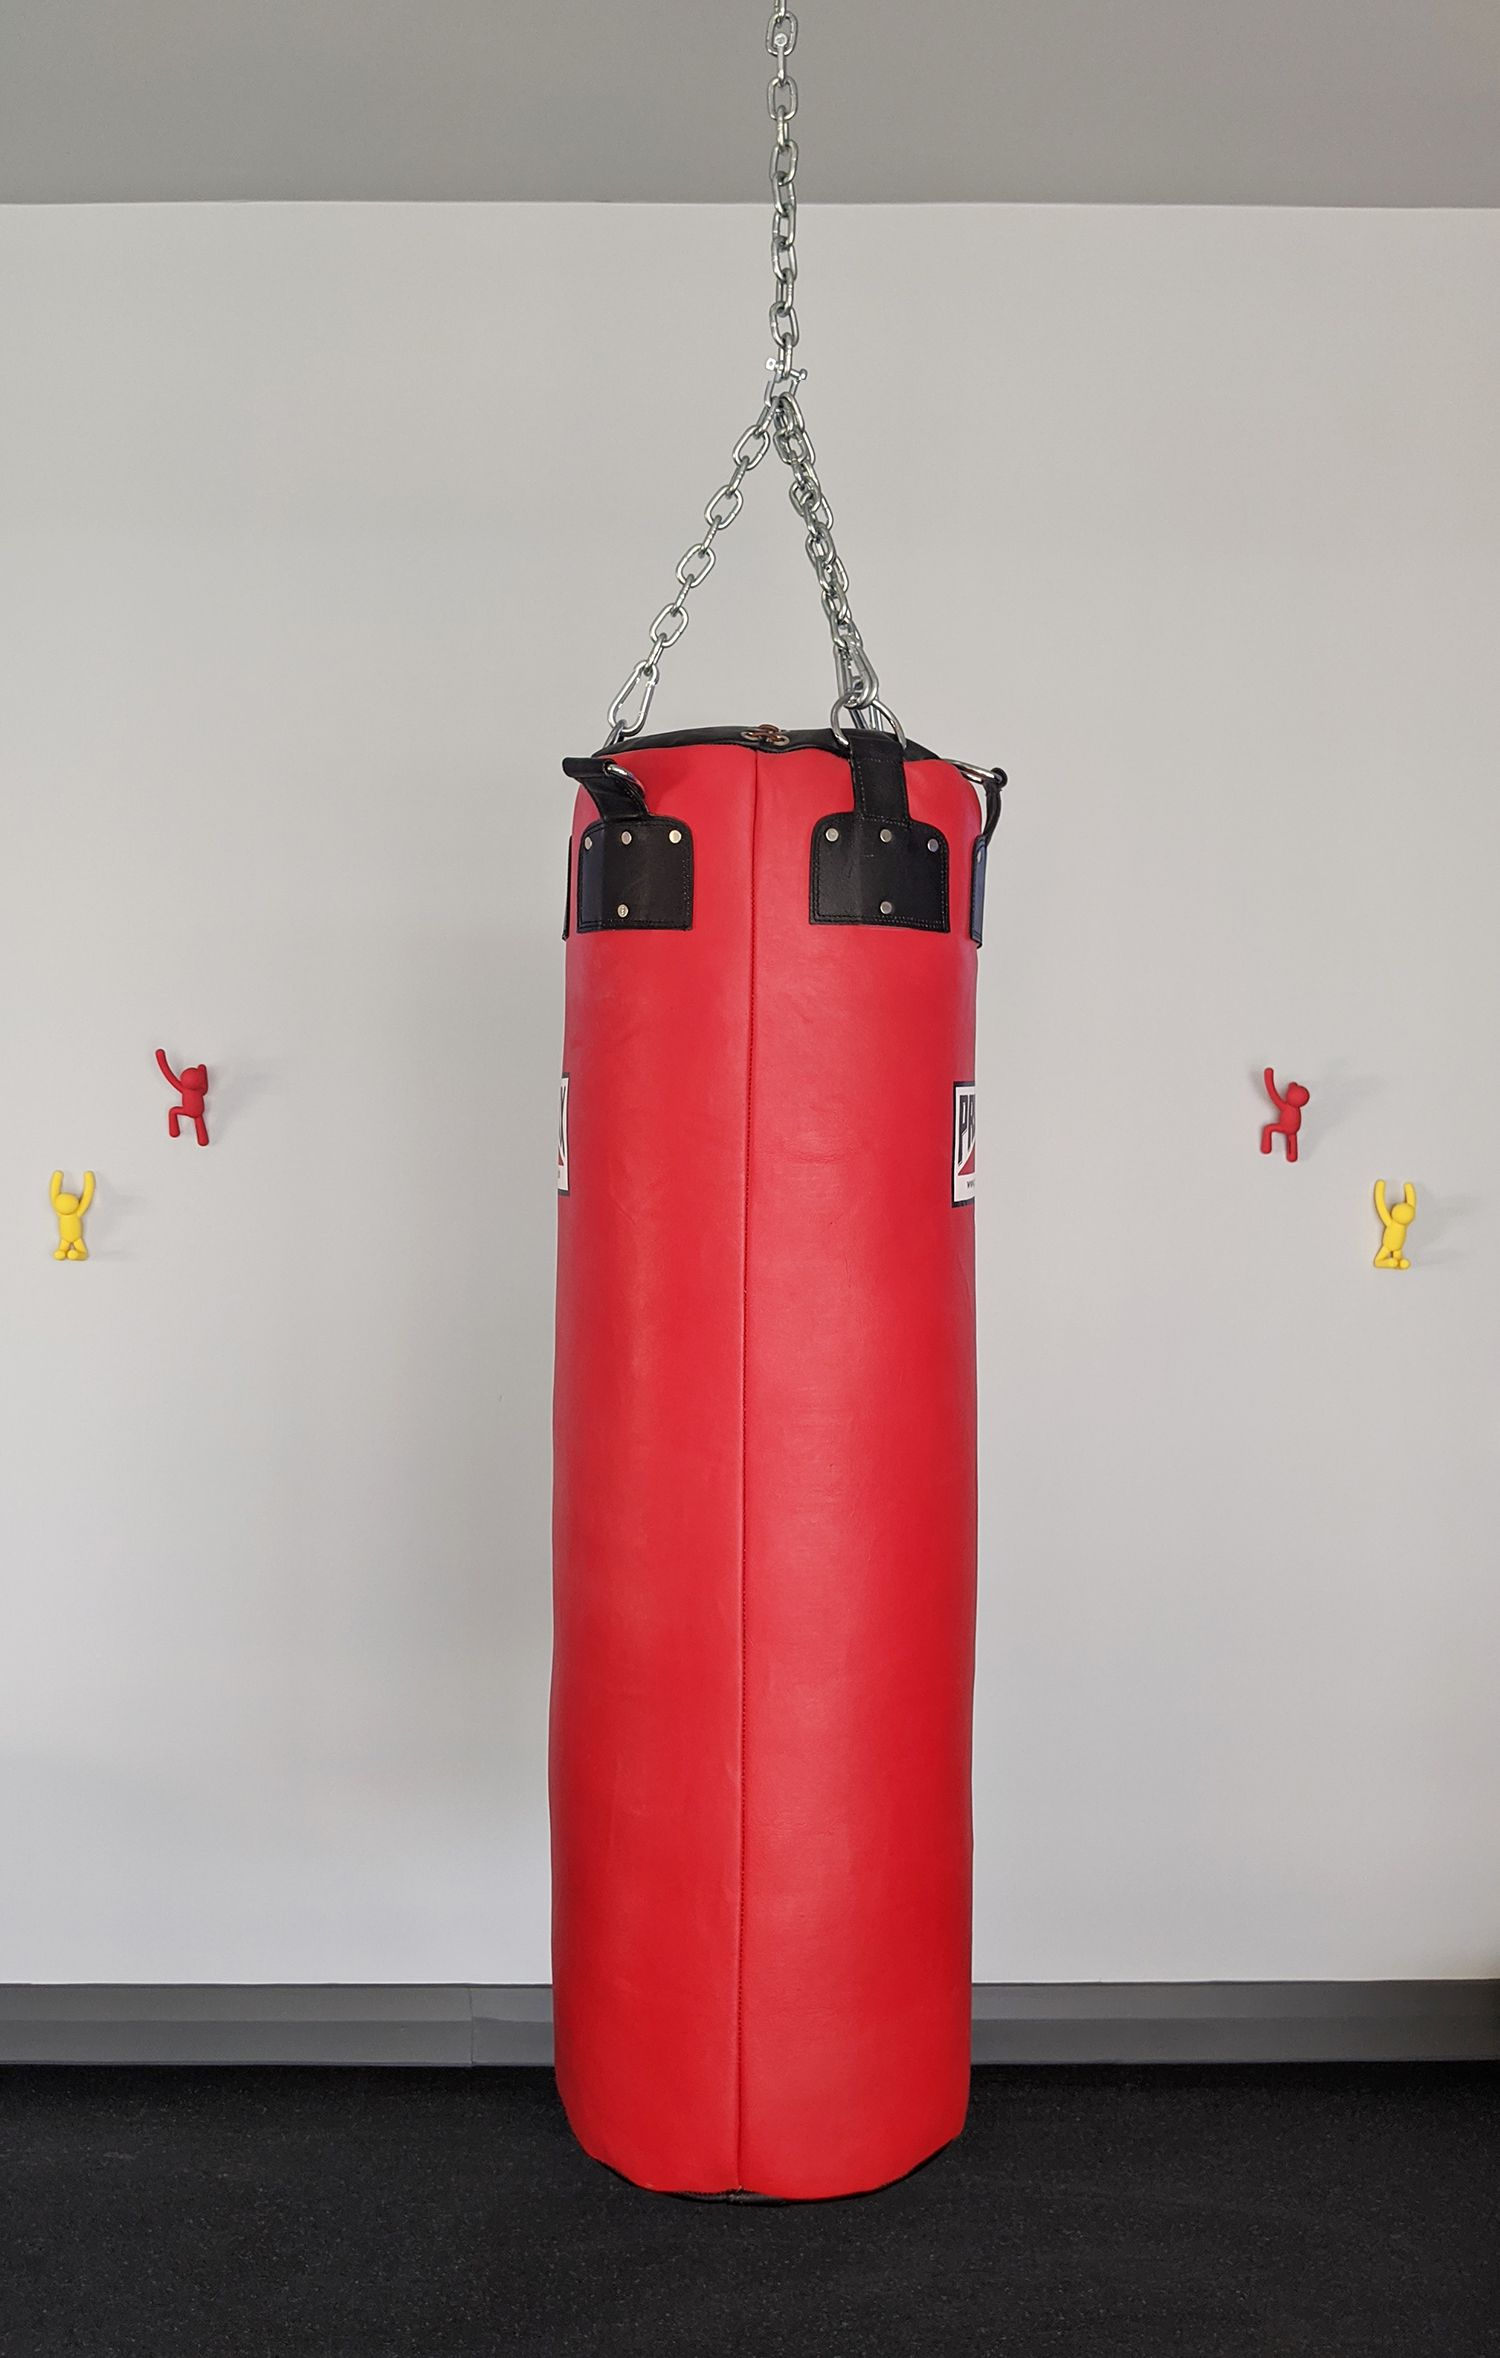 A close up of the red punch bag in the gym.